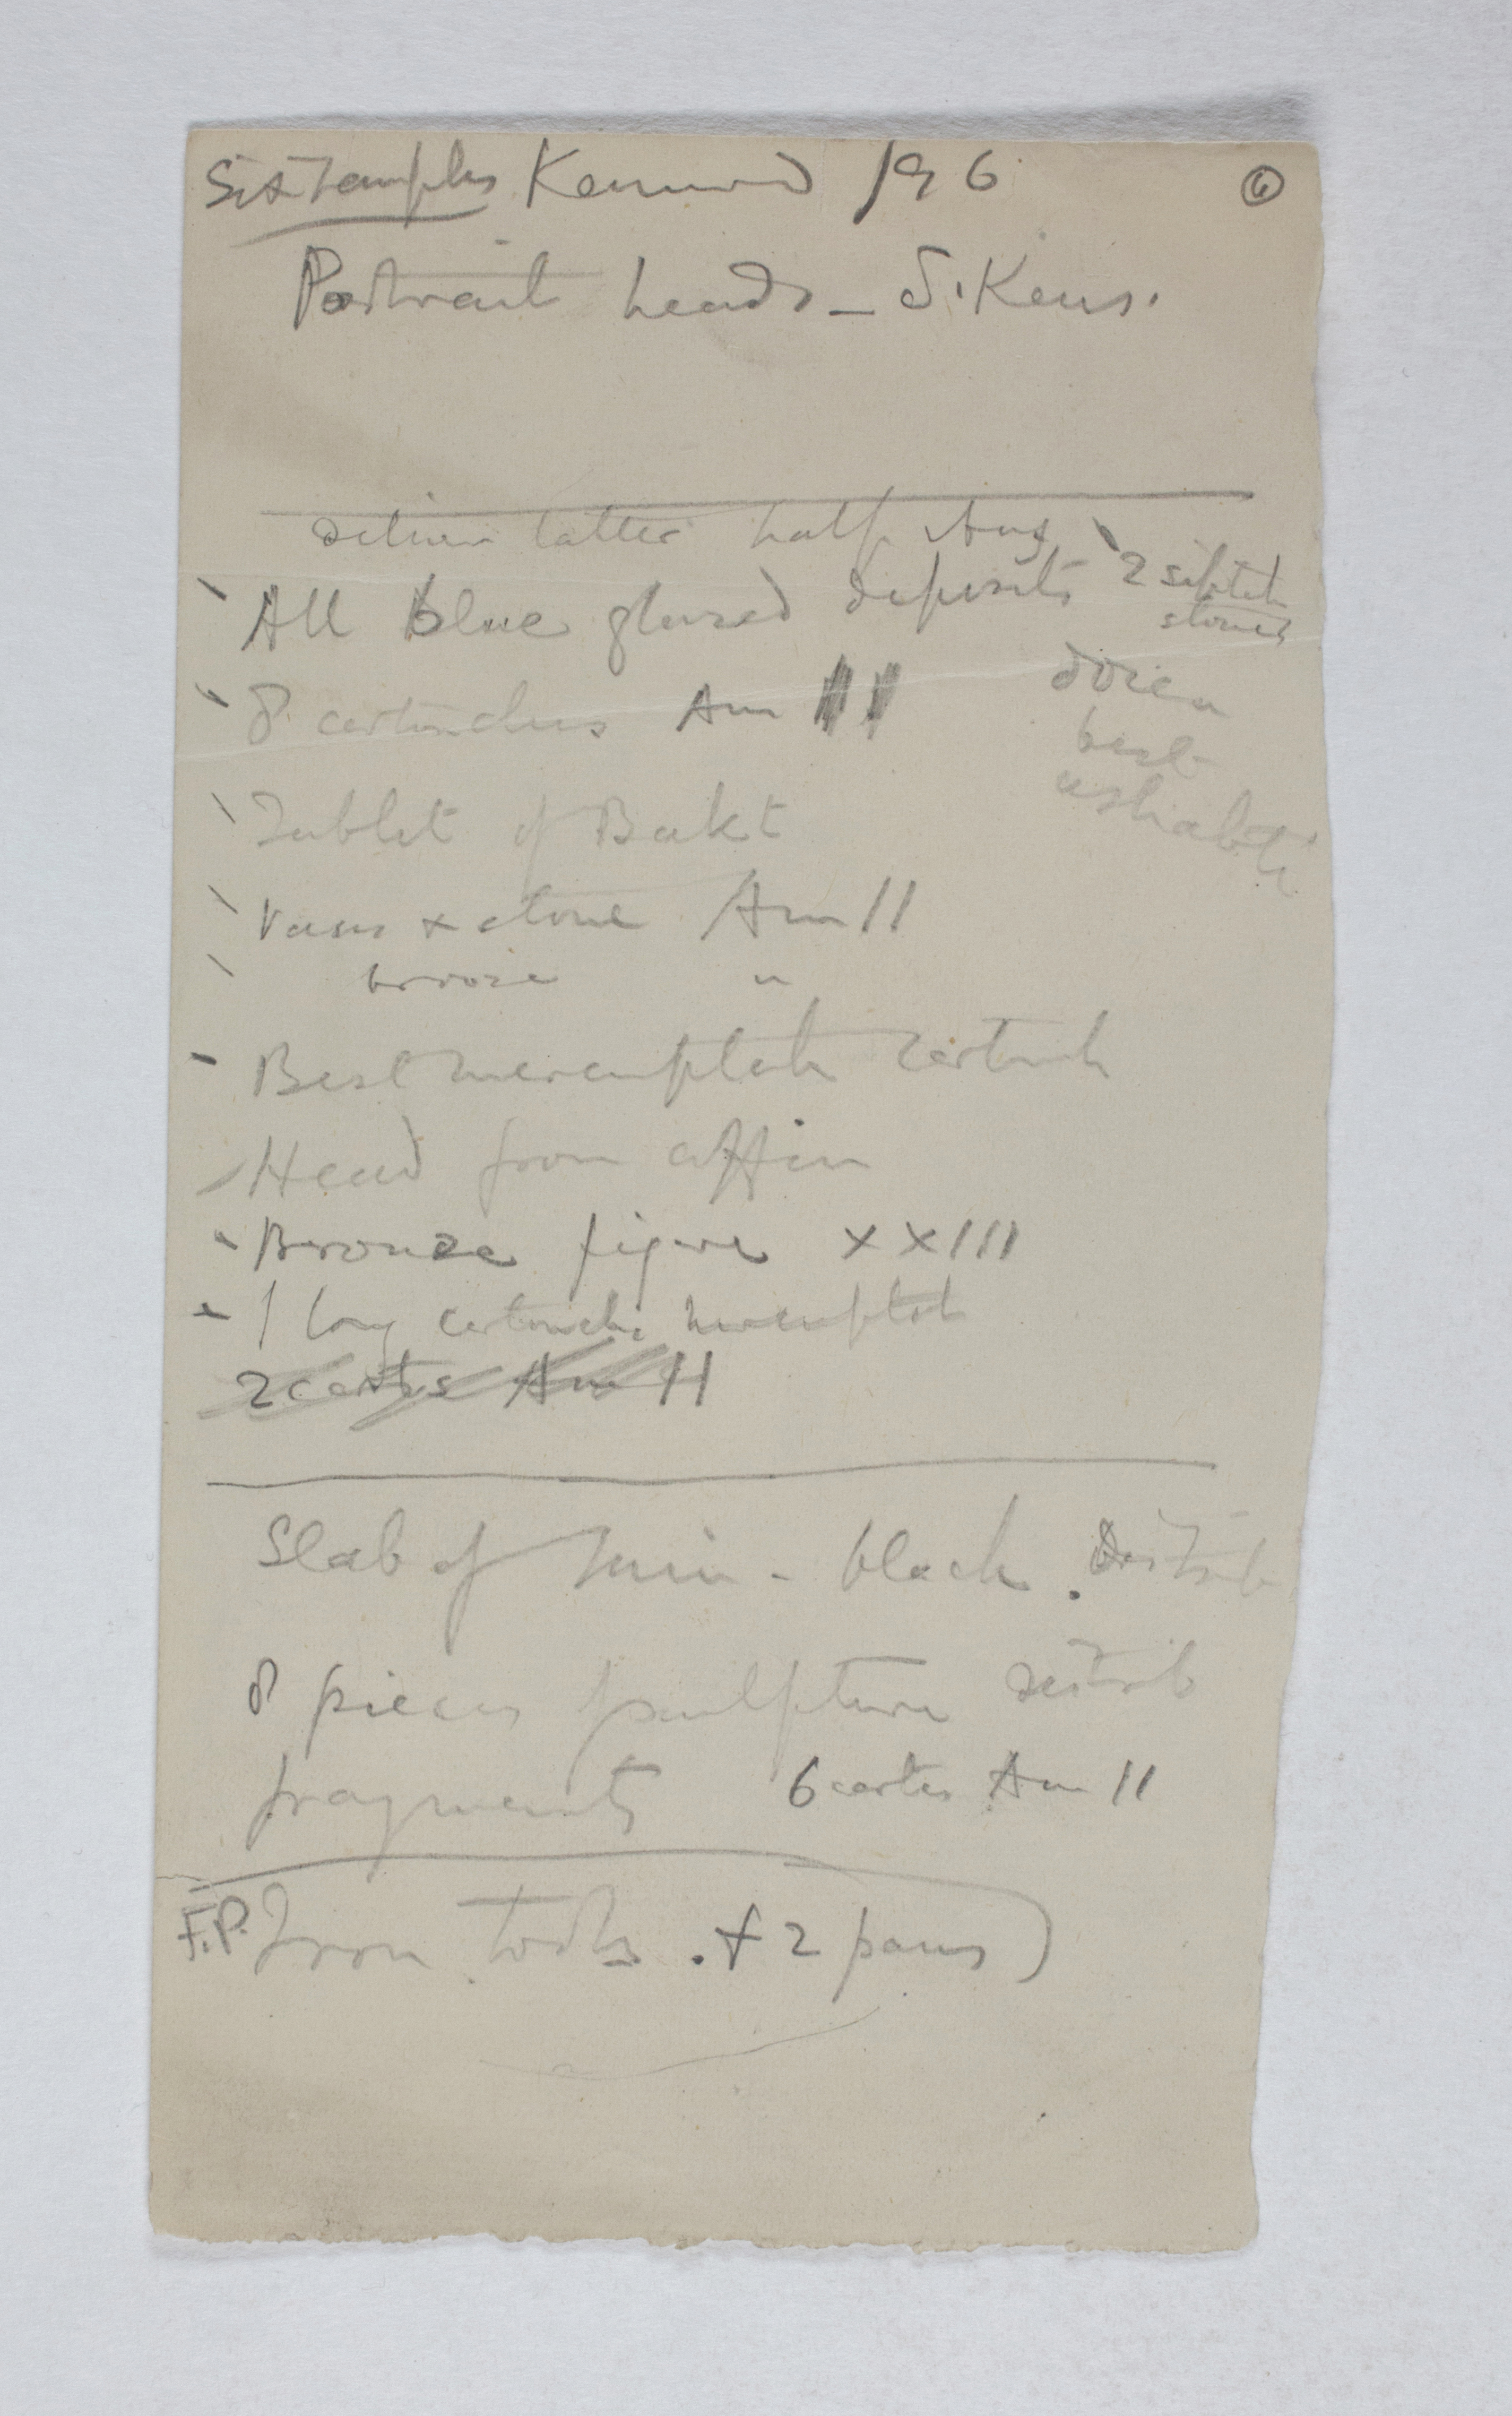 West Thebes 1895-1896, Multiple Institution List, PMA/WFP1/D/4/6.1